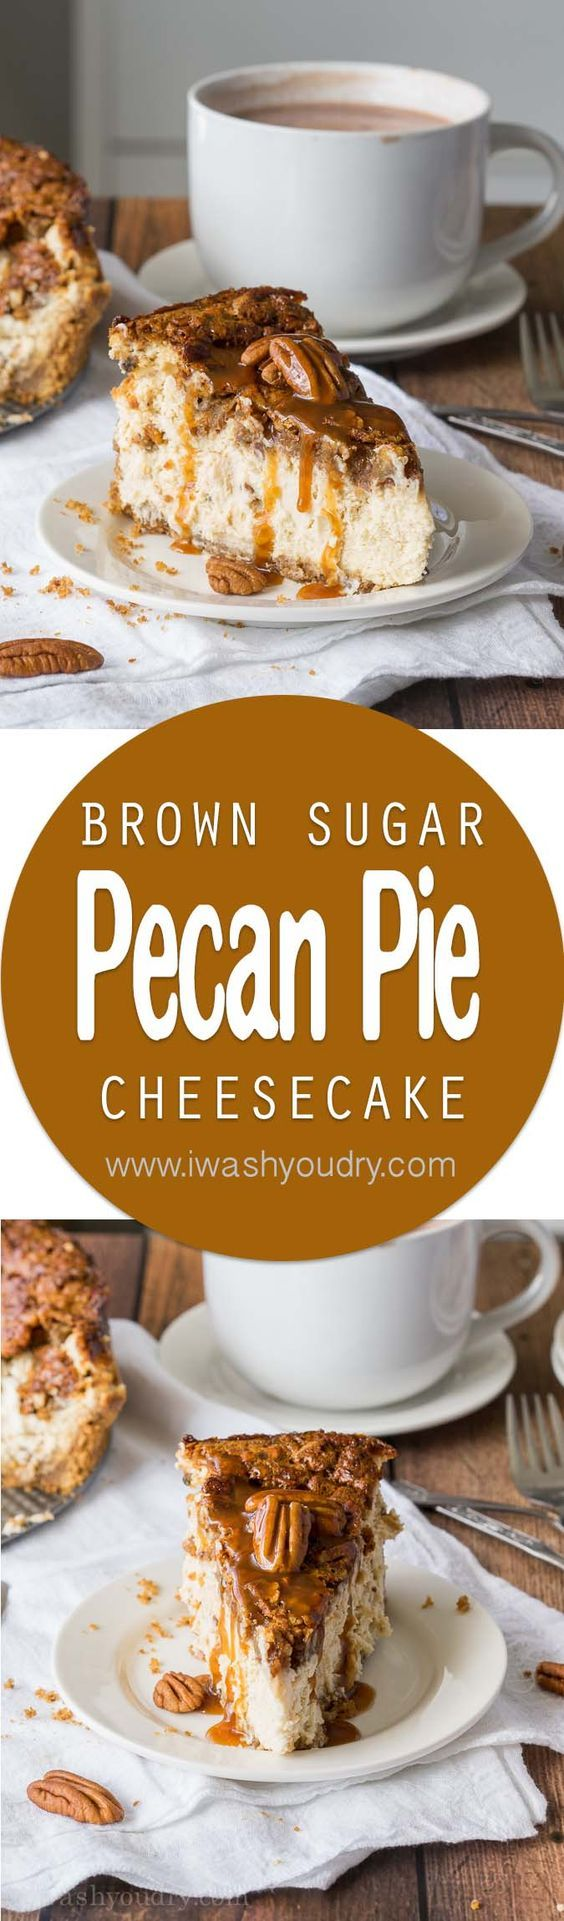 Luxury The best of both worlds This Brown Sugar Pecan Pie Cheesecake has a rich and